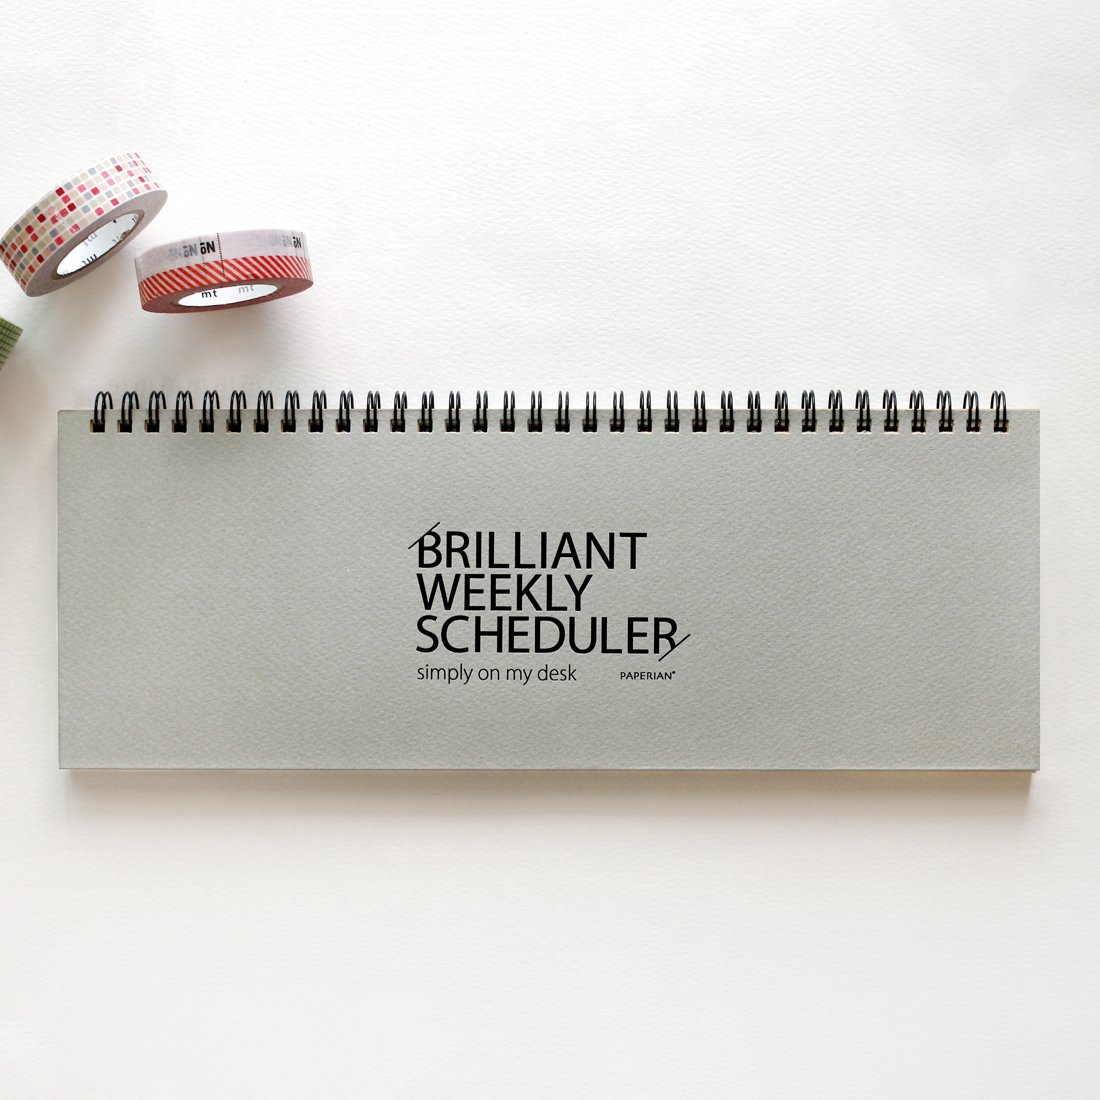 PAPERIAN Brilliant Weekly Scheduler - Wirebound Undated Weekly Planner Pad Scheduler (Gray)